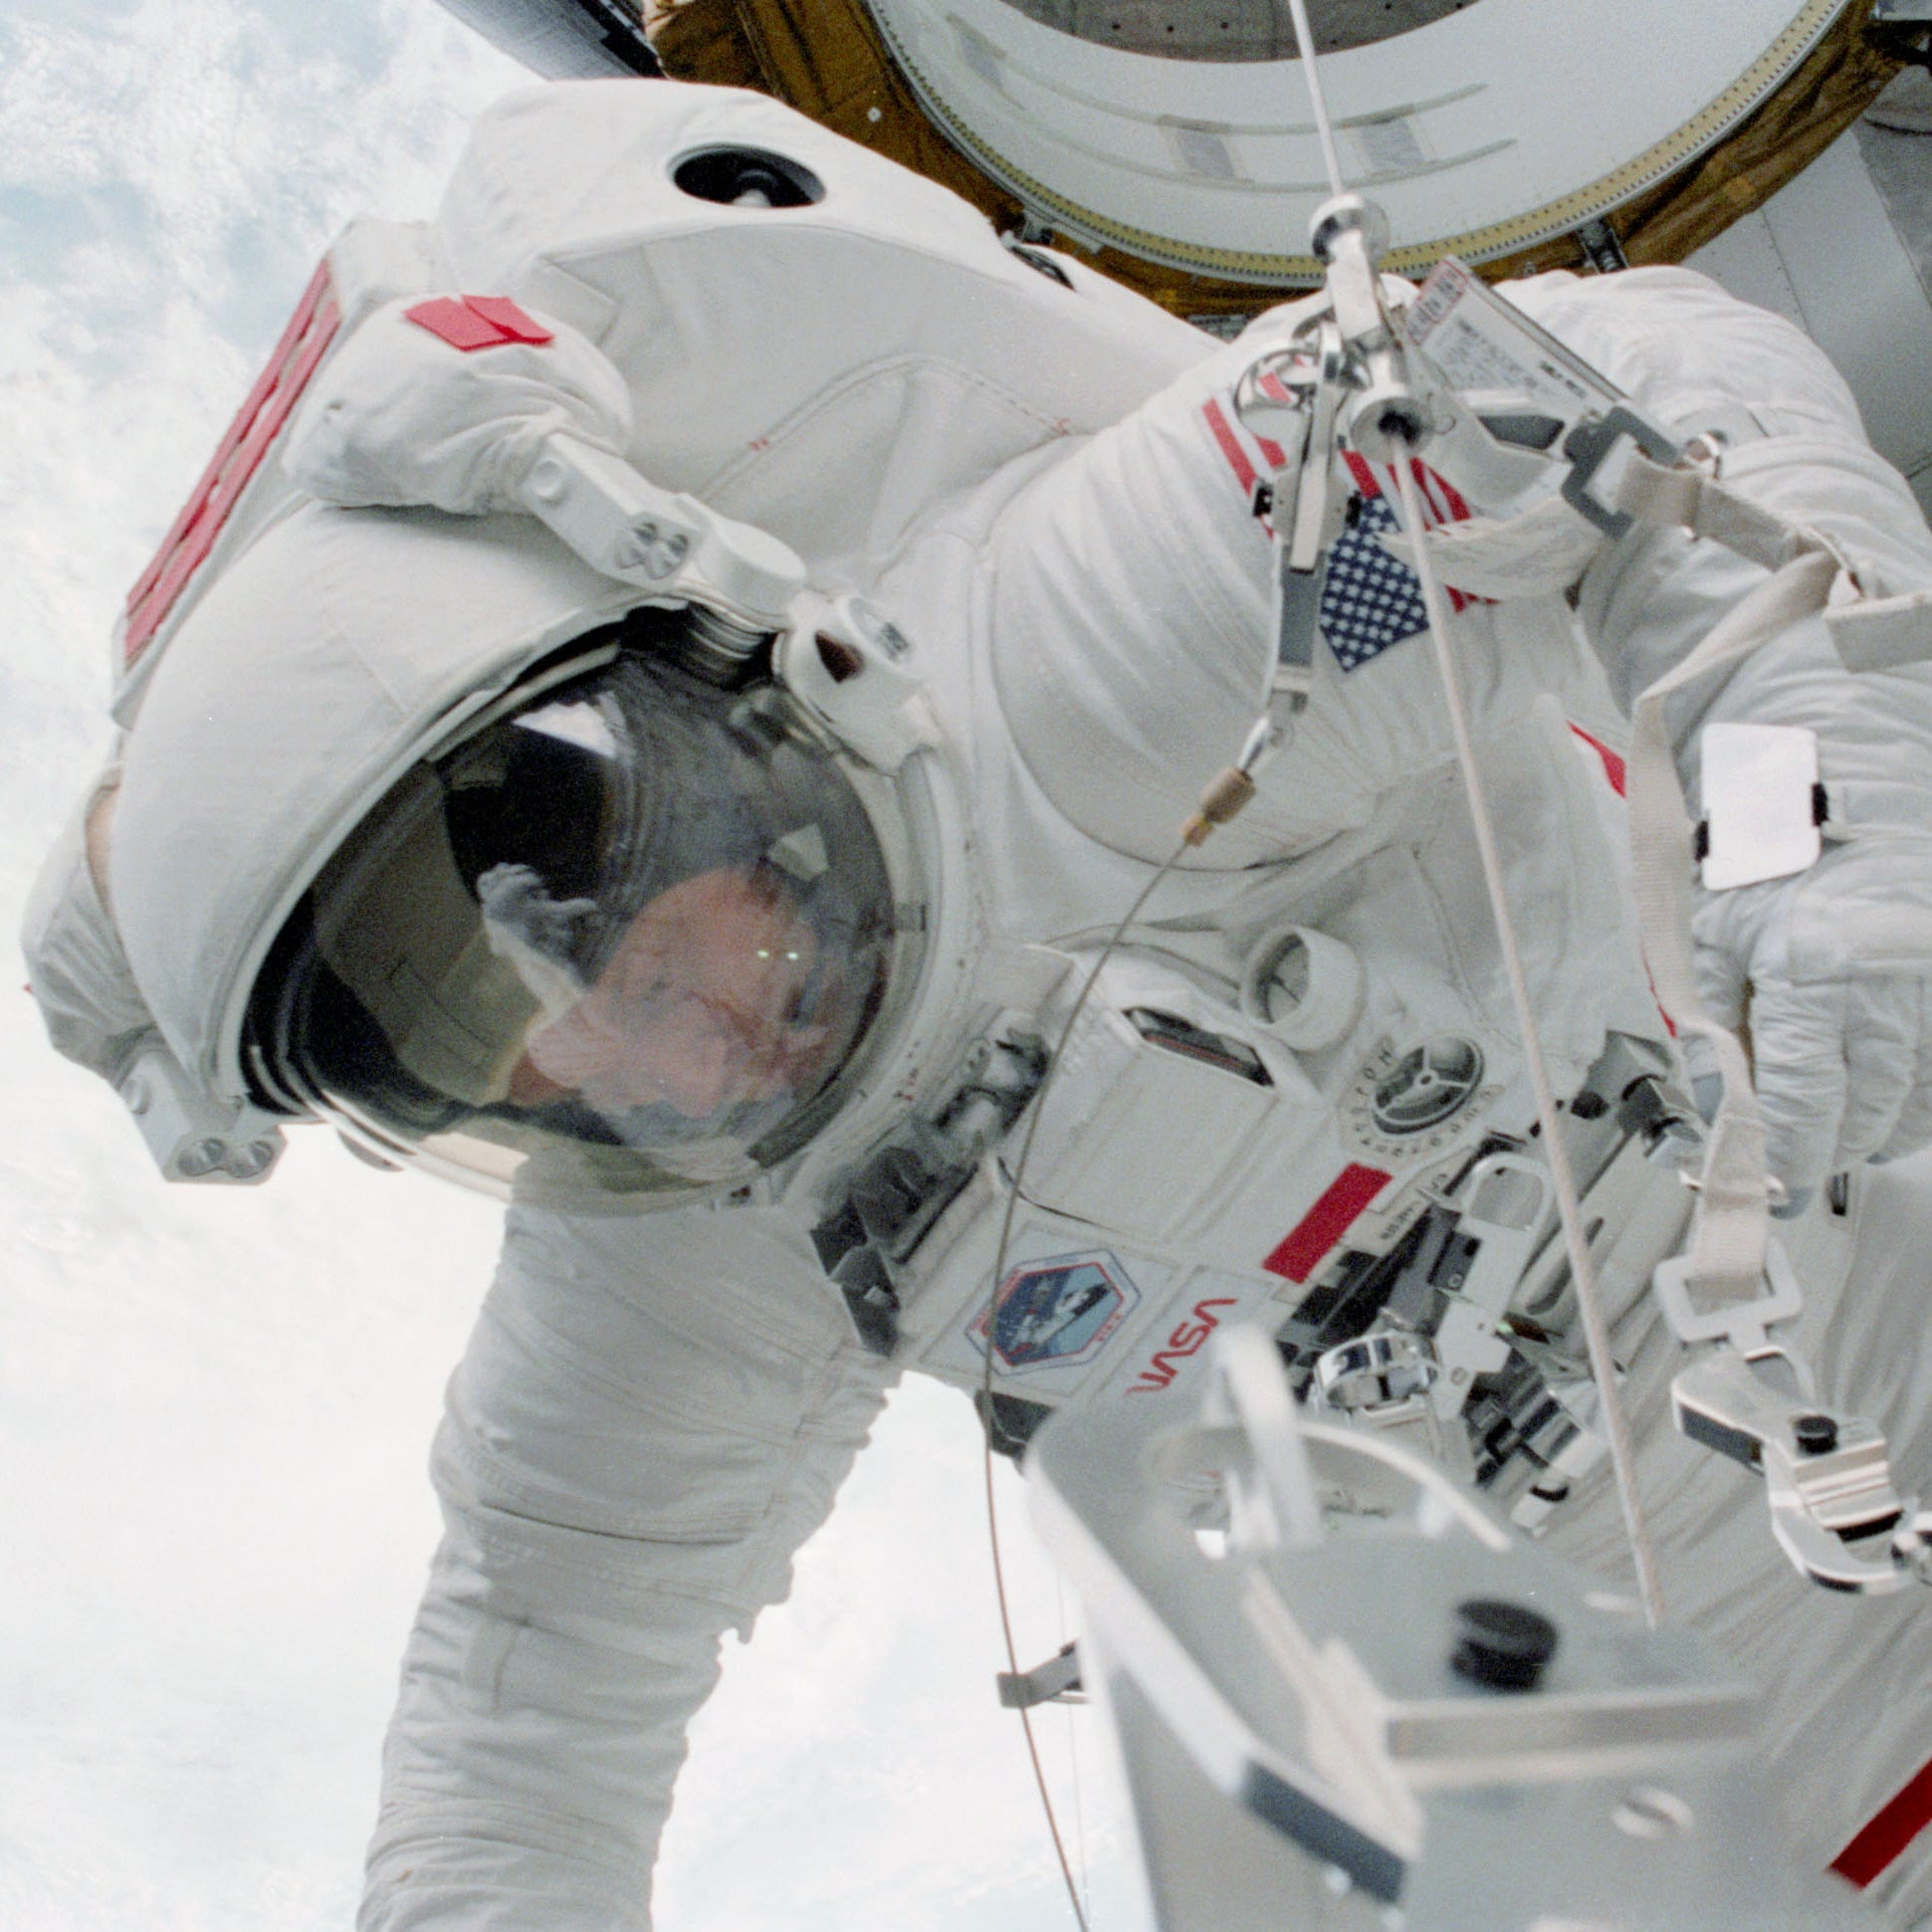 NASA is using the same spacesuits astronauts wore 30 years ago. Experts say that needs to change.